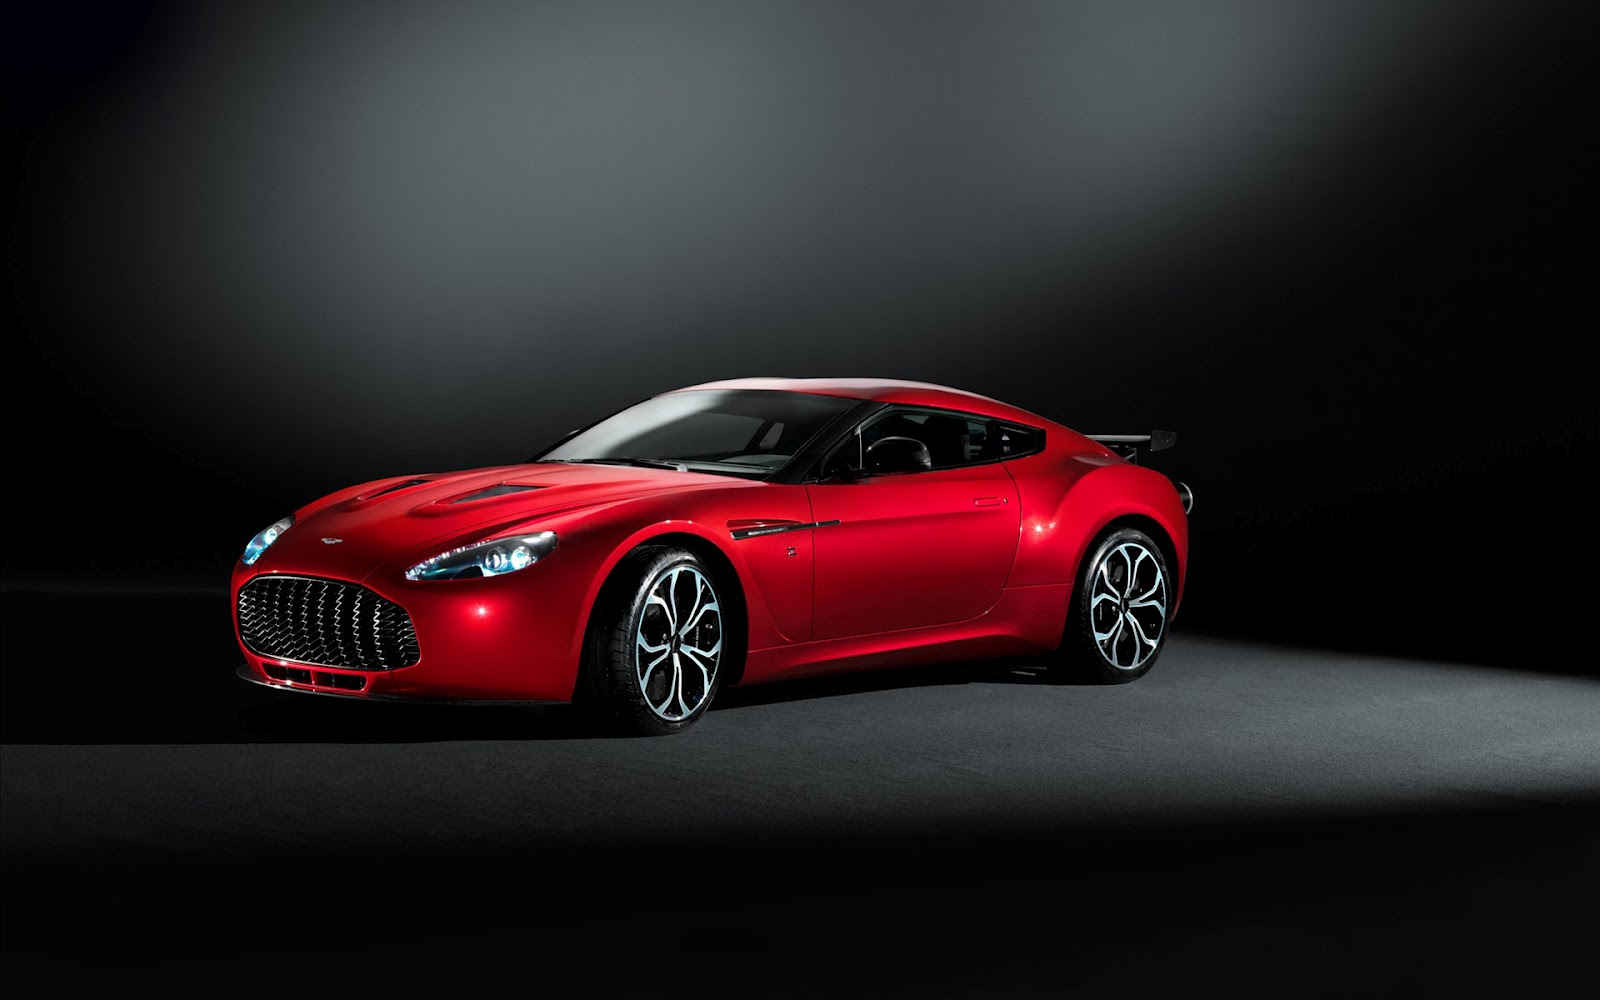 Cars Wallpapers: Cars High Quality Pictures